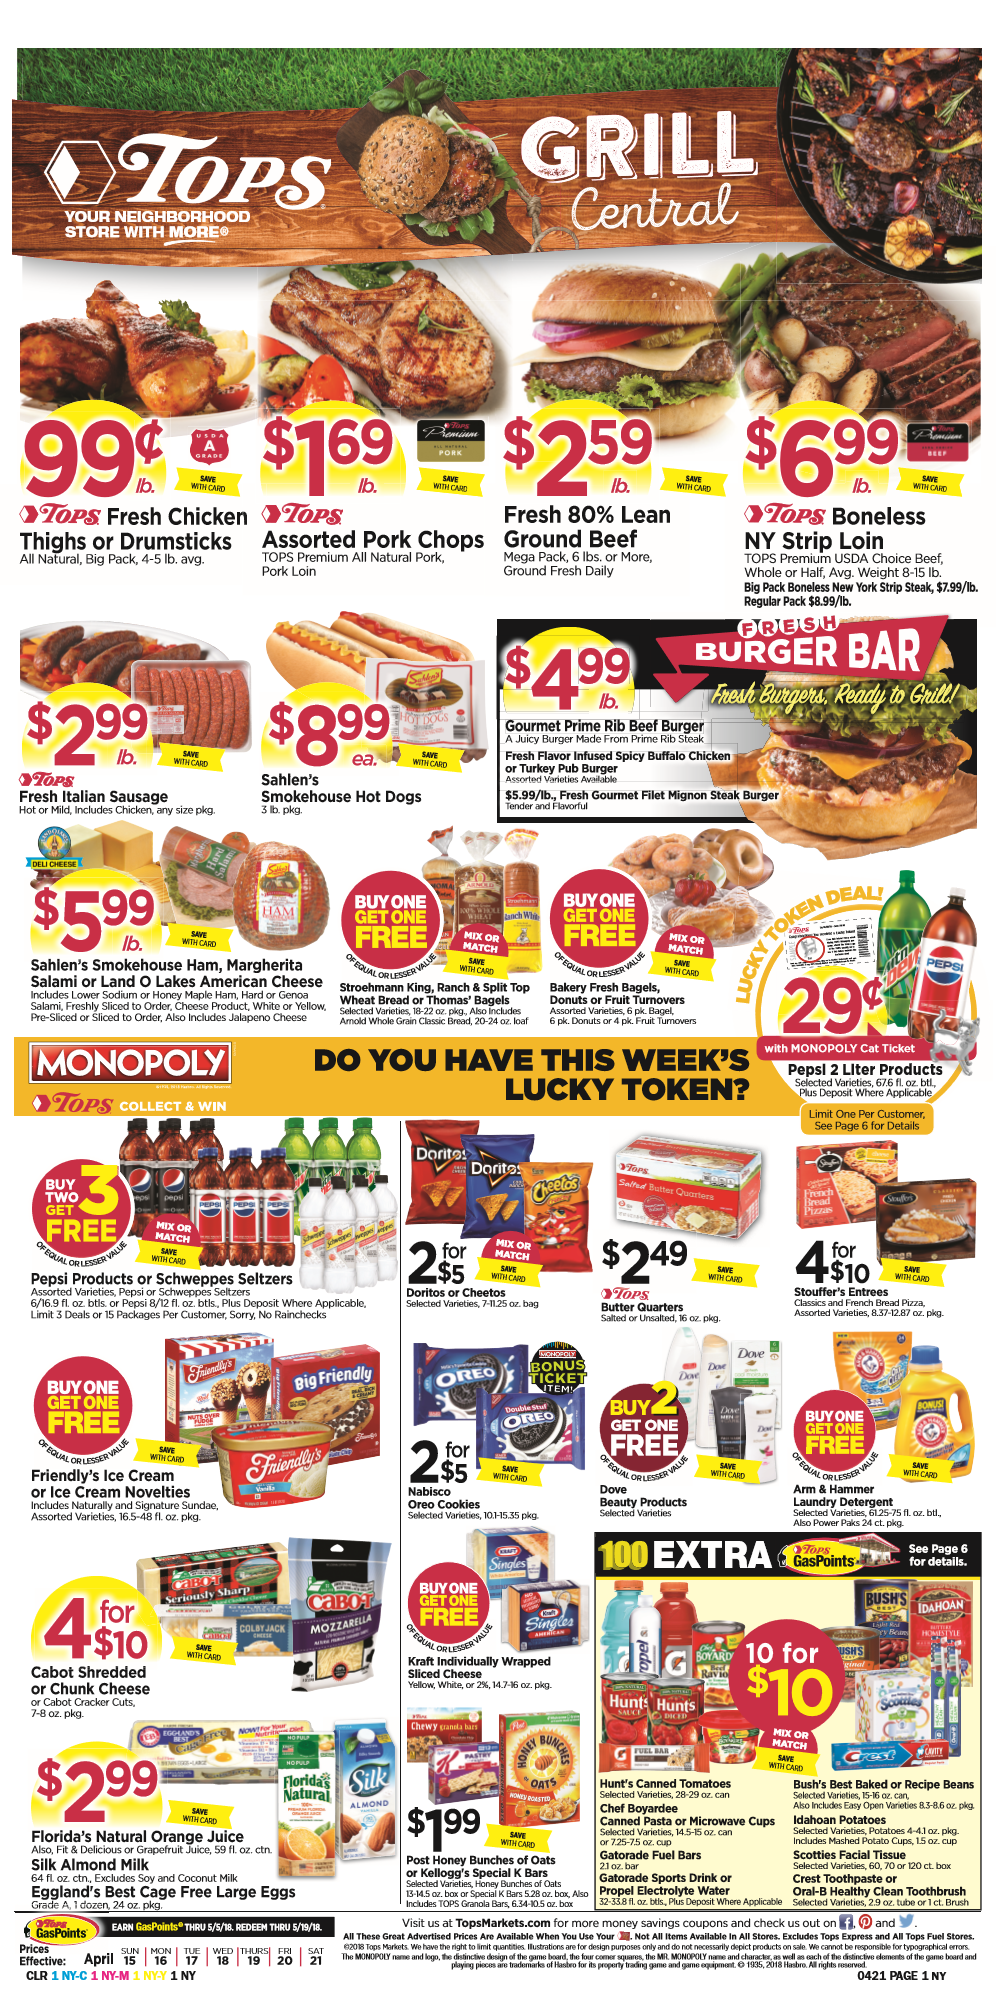 Coupons for 2 liter pepsi products